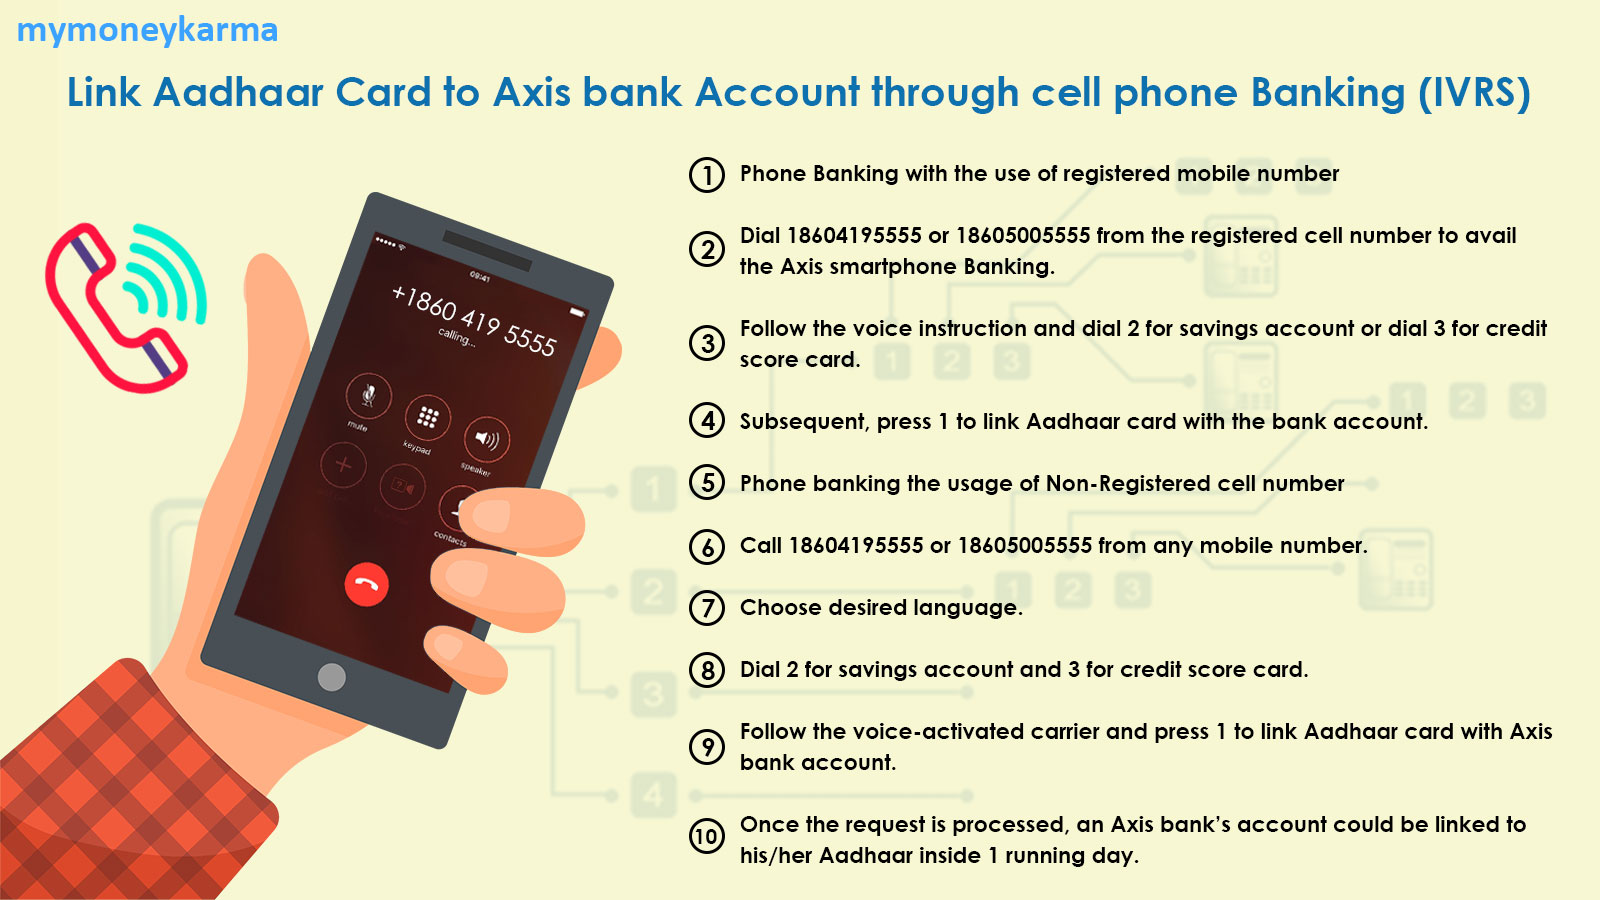 Phone Banking with the use of registered mobile number                         Dial 18604195555 or 18605005555 from the registered cell number to avail the Axis smartphone Banking.                         Follow the voice instruction and dial 2 for savings account or dial 3 for credit score card.                         Subsequent, press 1 to link Aadhaar card with the bank account.                         Phone banking the usage of Non-Registered cell number                         Call 18604195555 or 18605005555 from any mobile number.                         Choose desired language.                         Dial 2 for savings account and 3 for credit score card.                         Follow the voice-activated carrier and press 1 to link Aadhaar card with Axis bank account.                         Once the request is processed, an Axis bank's account could be linked to his/her Aadhaar inside 1 running day.